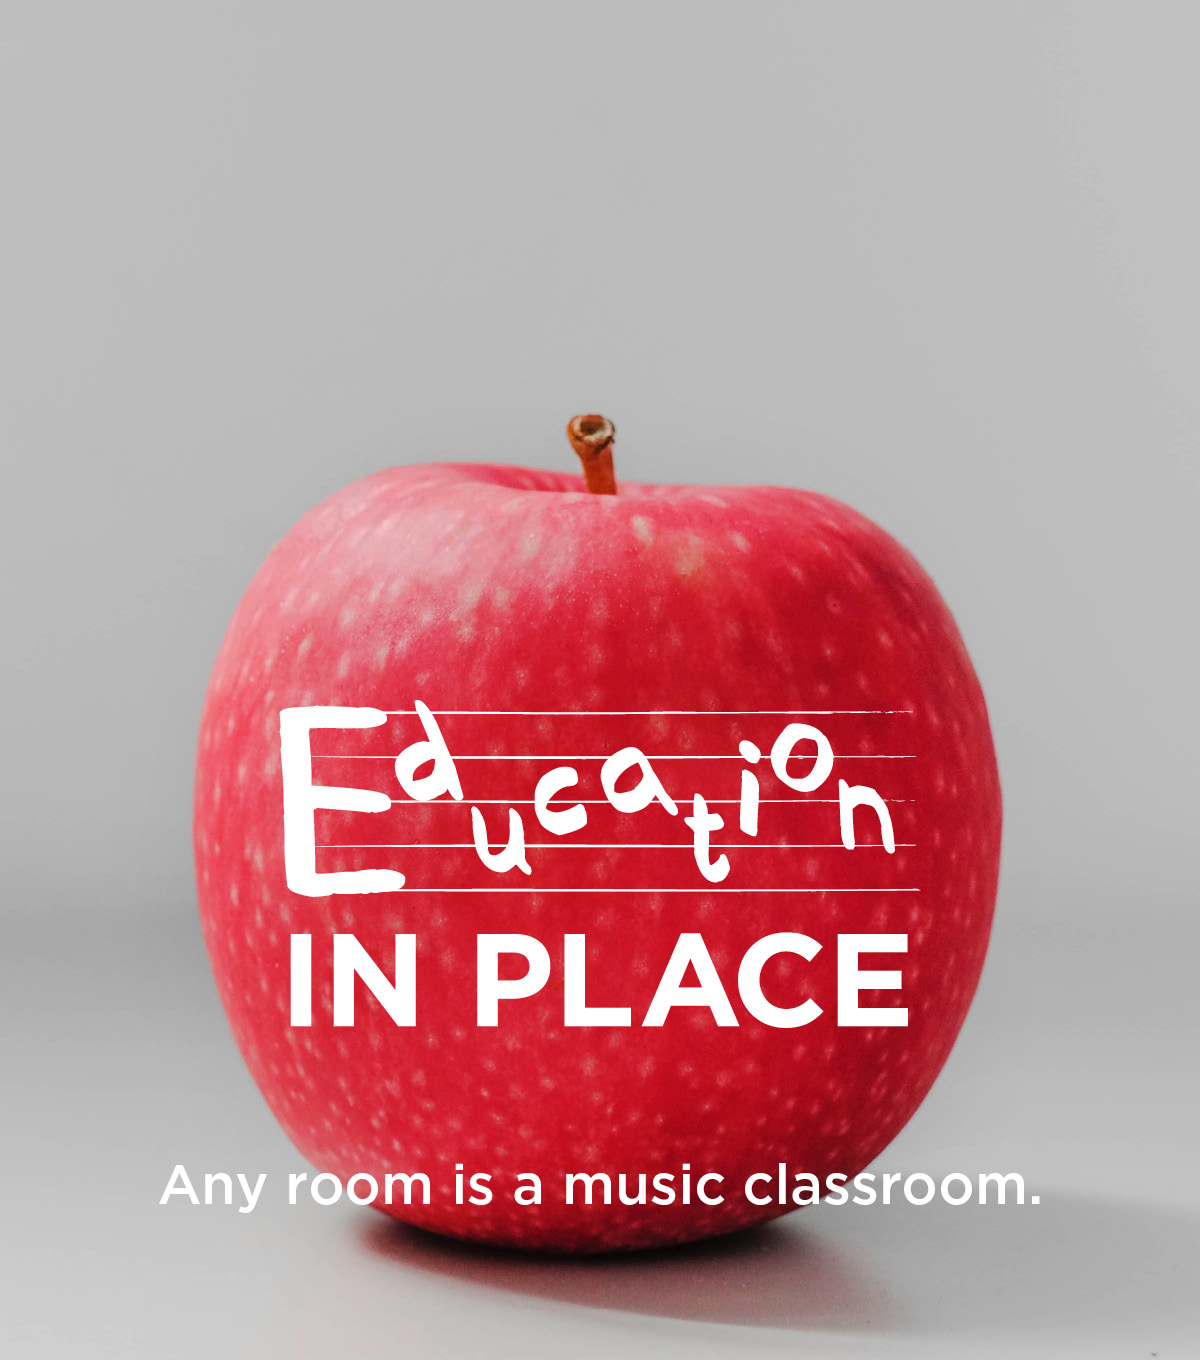 Education in Place - Any room is a music classroom.